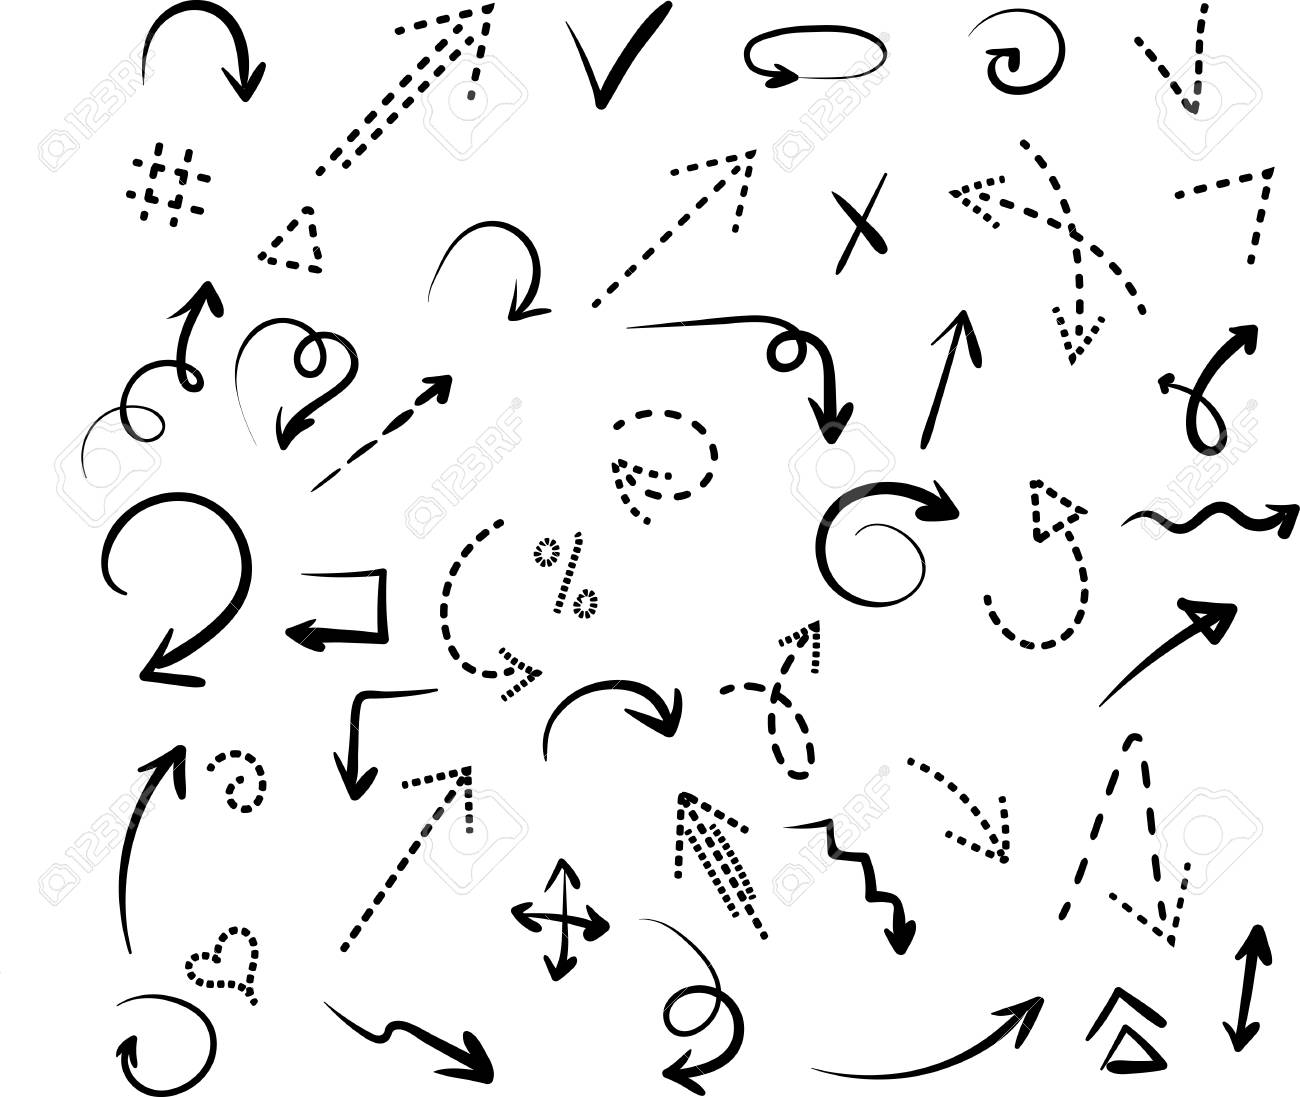 Set of black hand-drawn arrows and dotted signs isolated on white background. Vector illustration. - 100703232